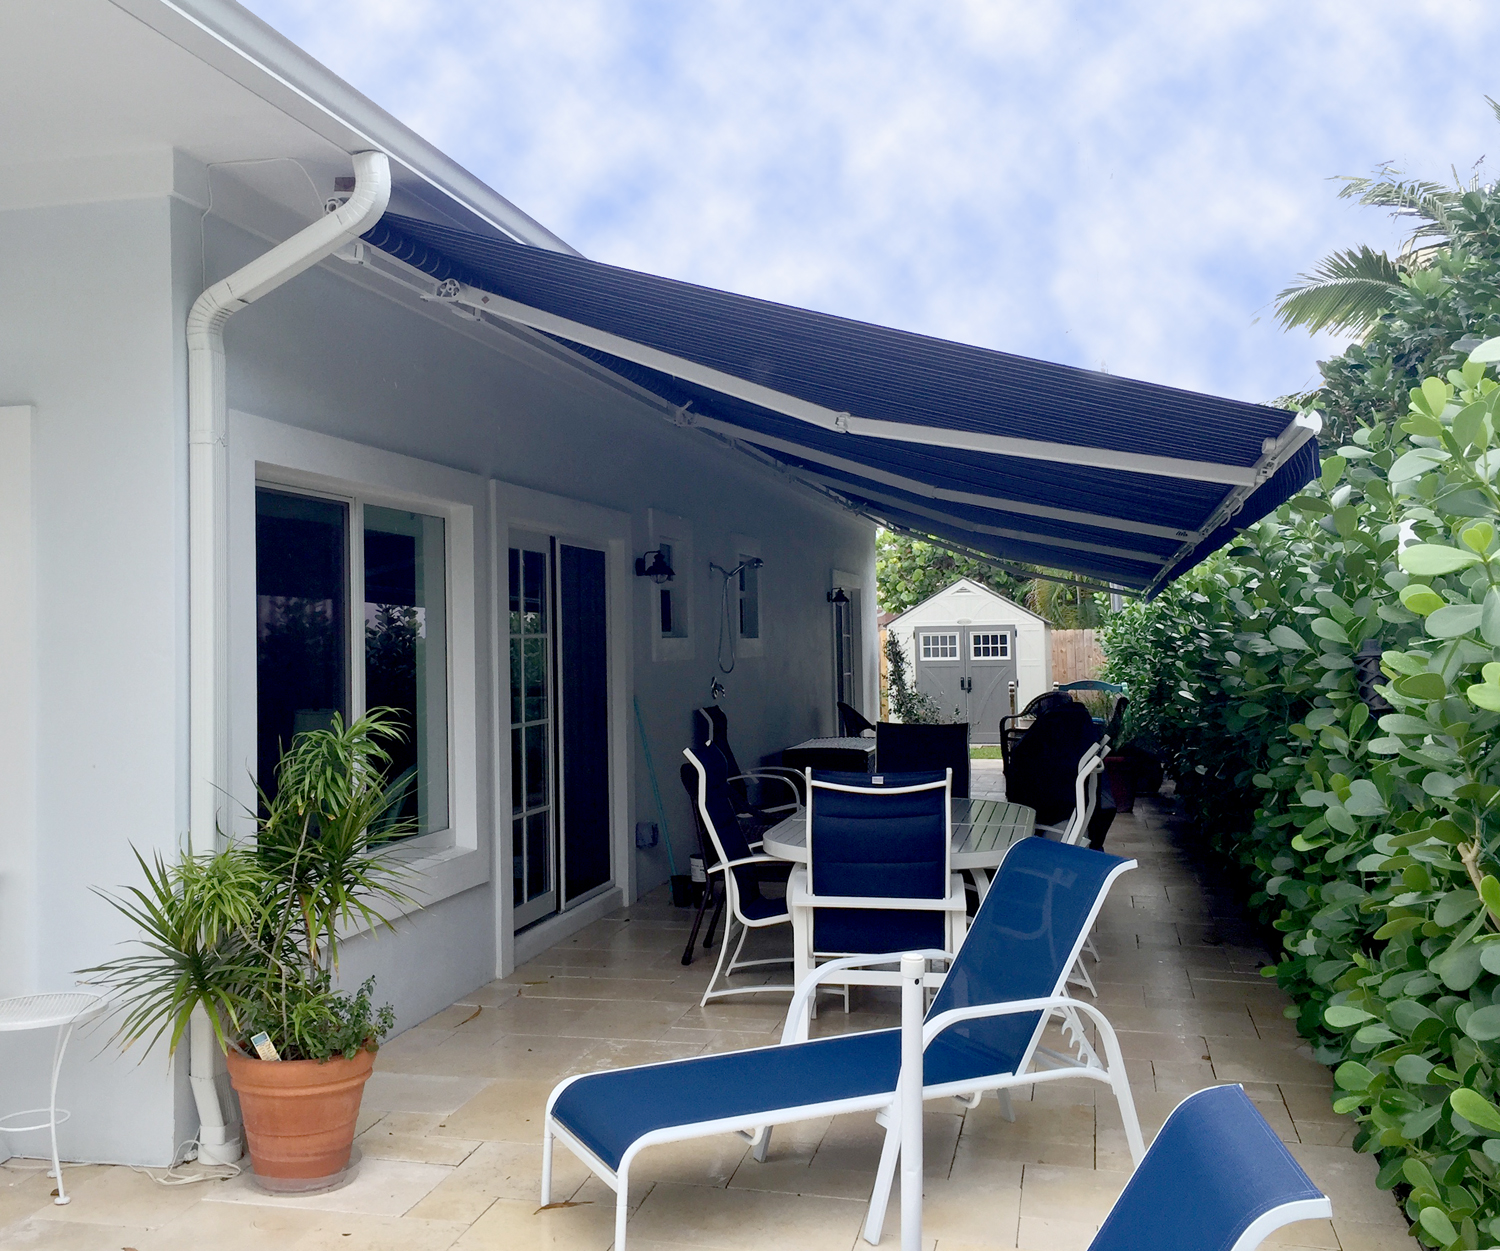 15 X 10 Retractable Awning